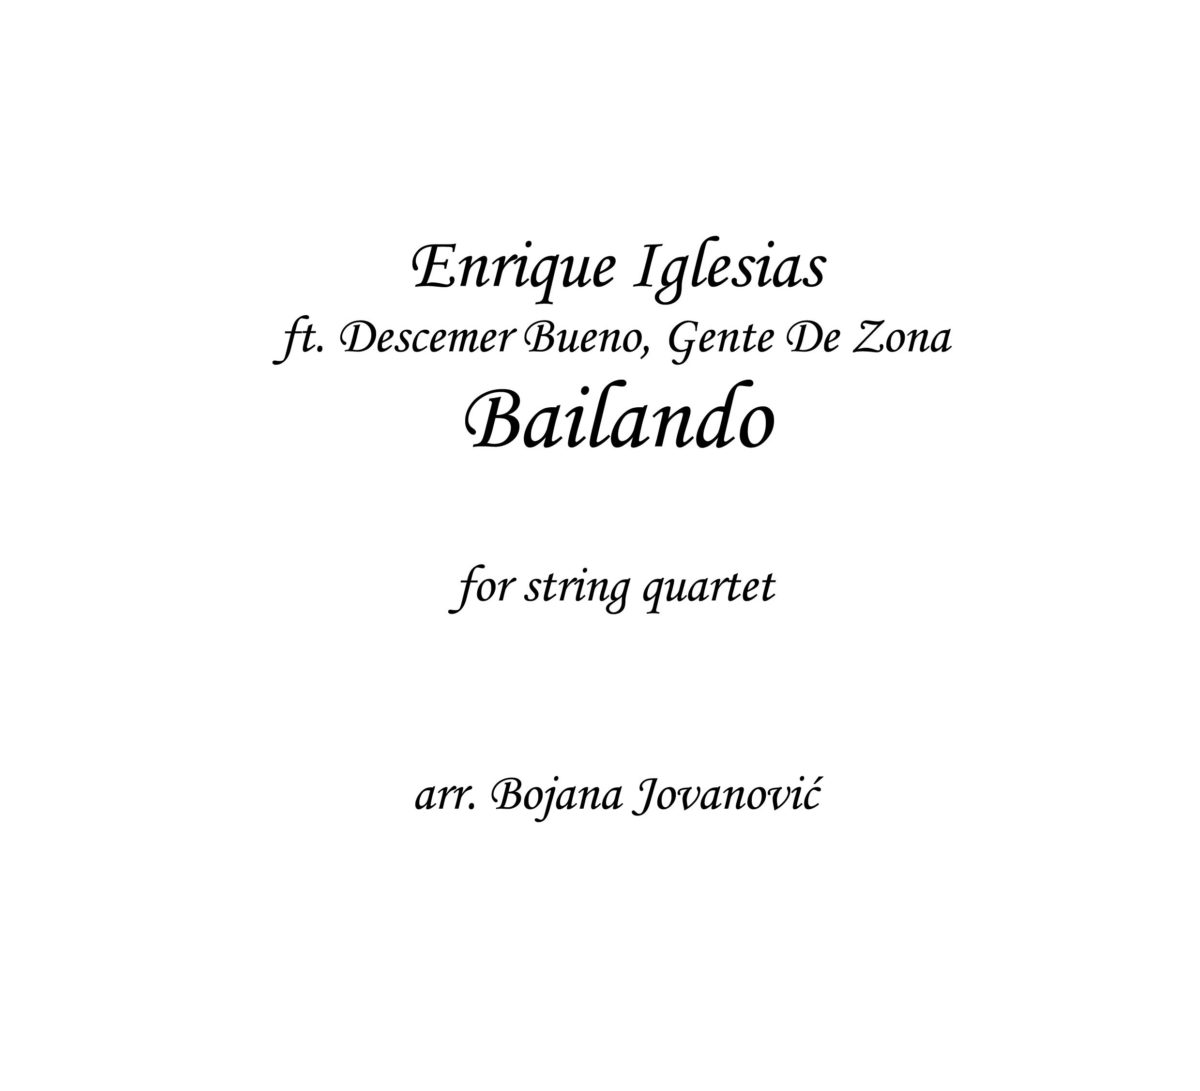 Bailando (Enrique Iglesias) - Sheet Music